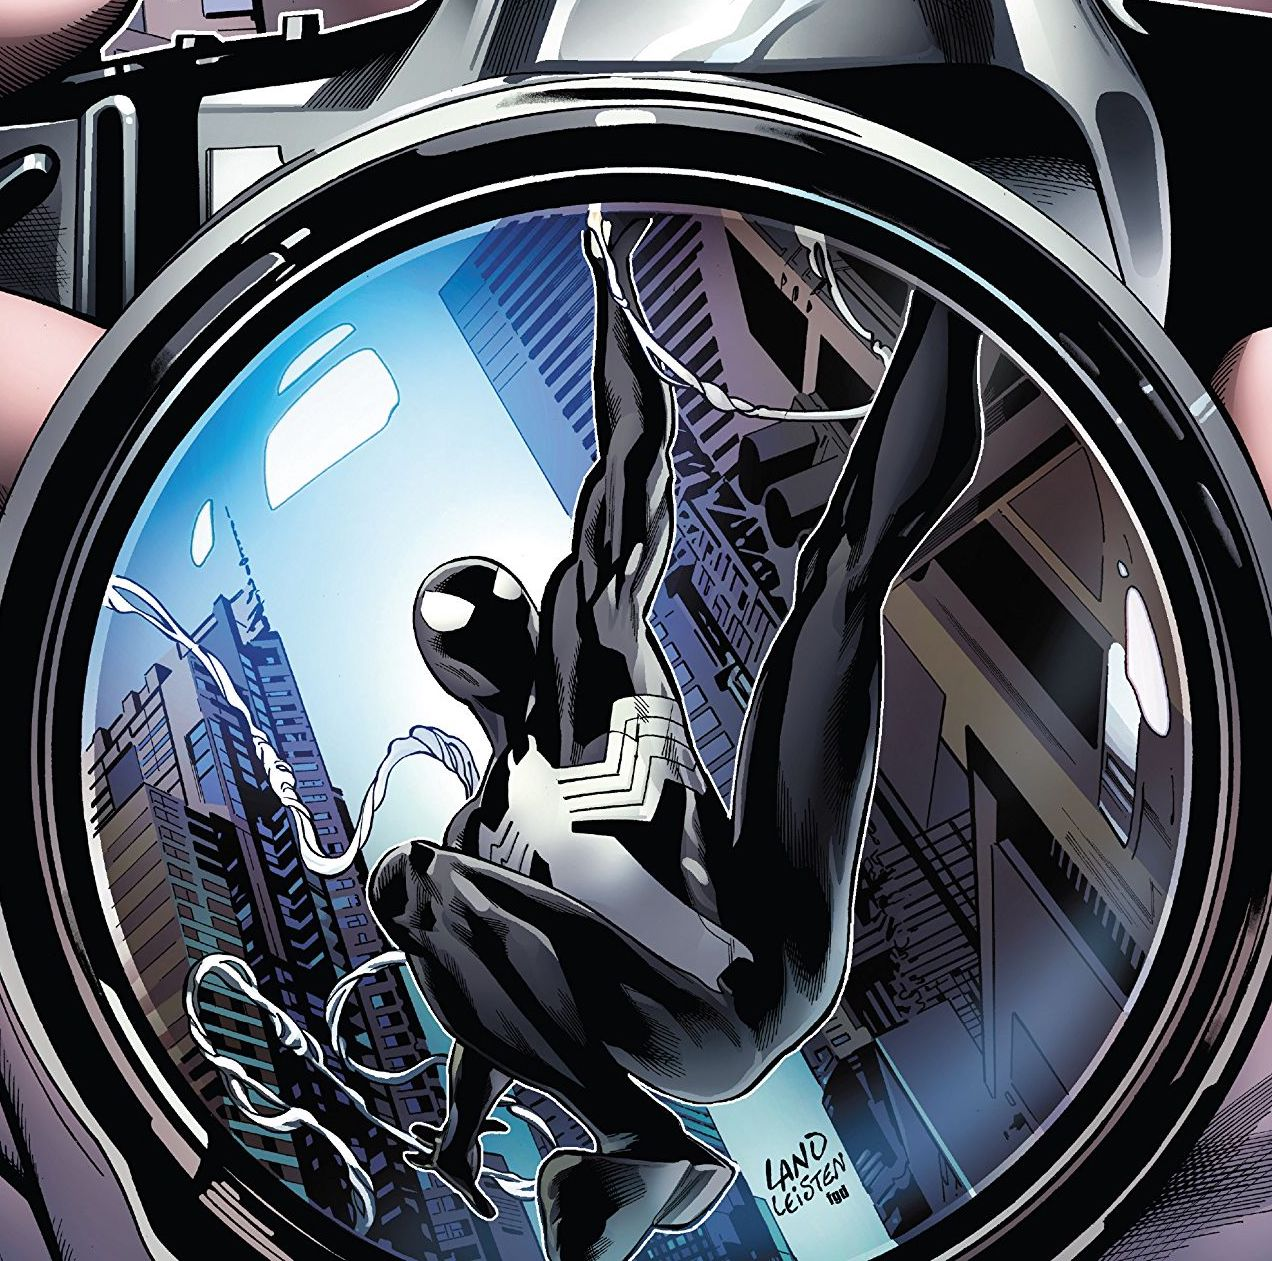 Only in comics could you explore the life of a character who wore the Symbiote for a matter of minutes.